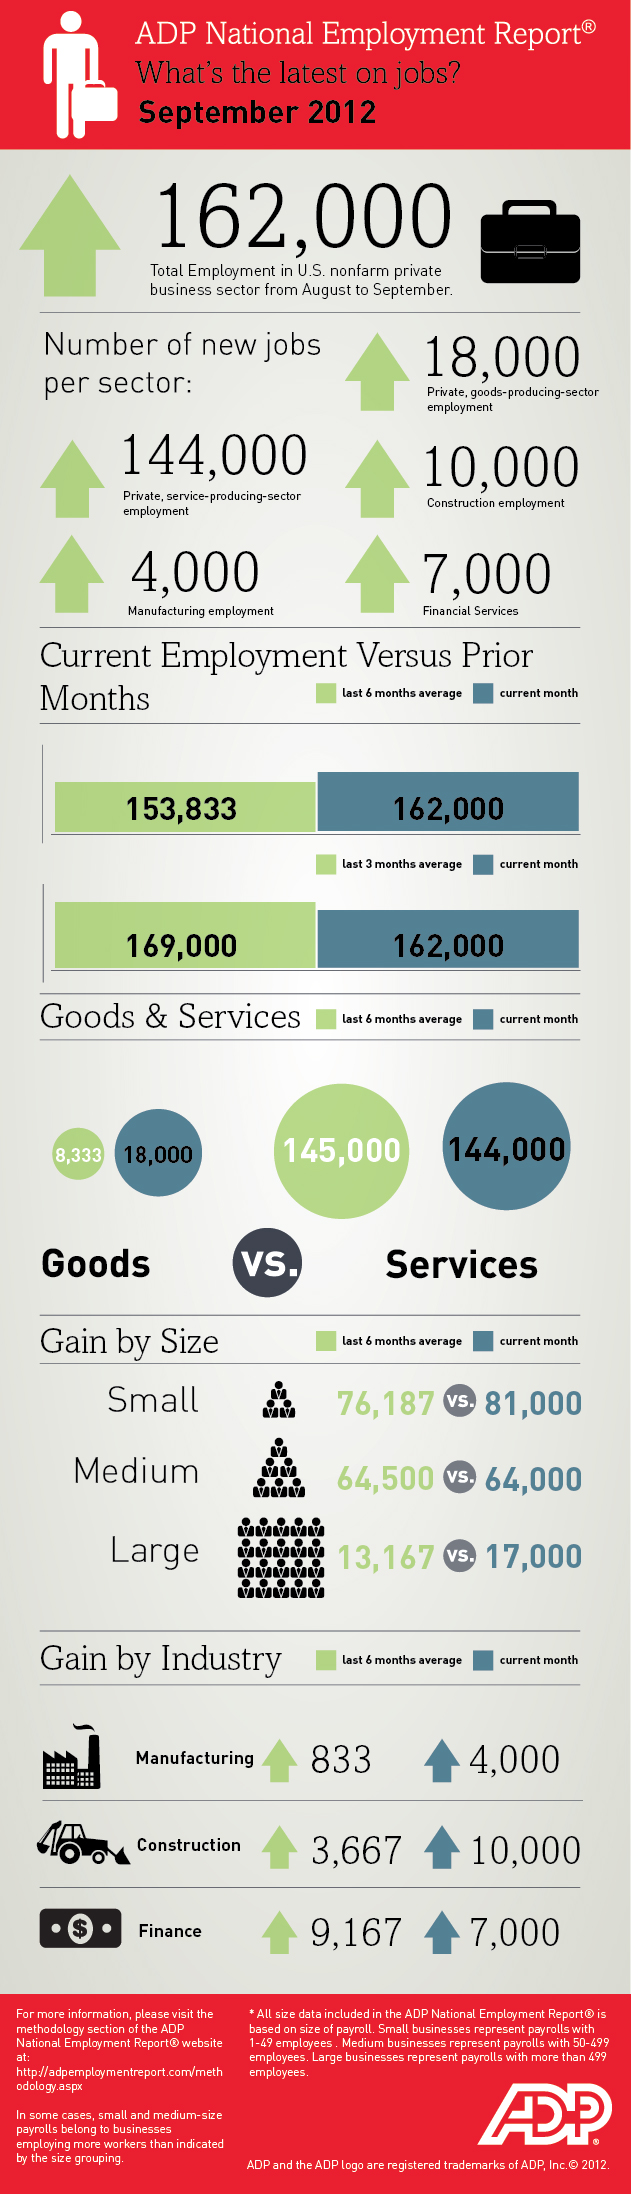 whats-the-latest-on-jobs-adp-national-employment-report--september-2012_506c8e1c47e35